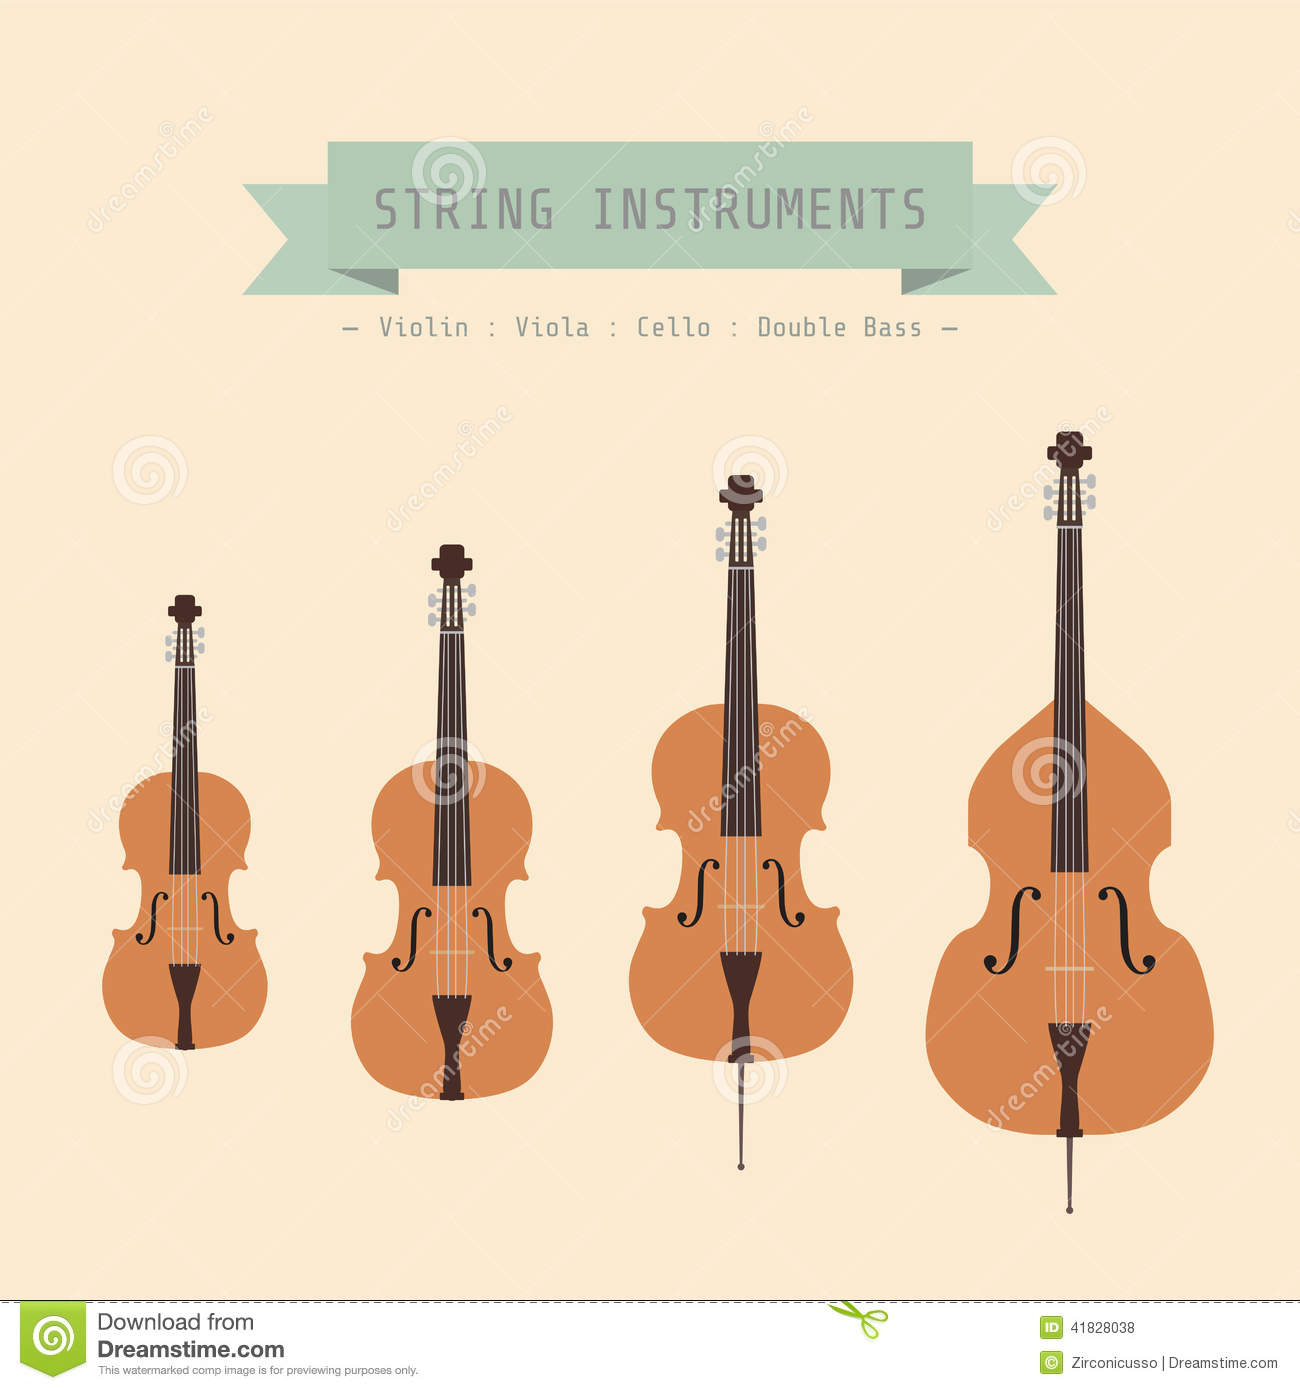 ... Instrument String, Violin, Viola, Cello and Double Bass, flat style